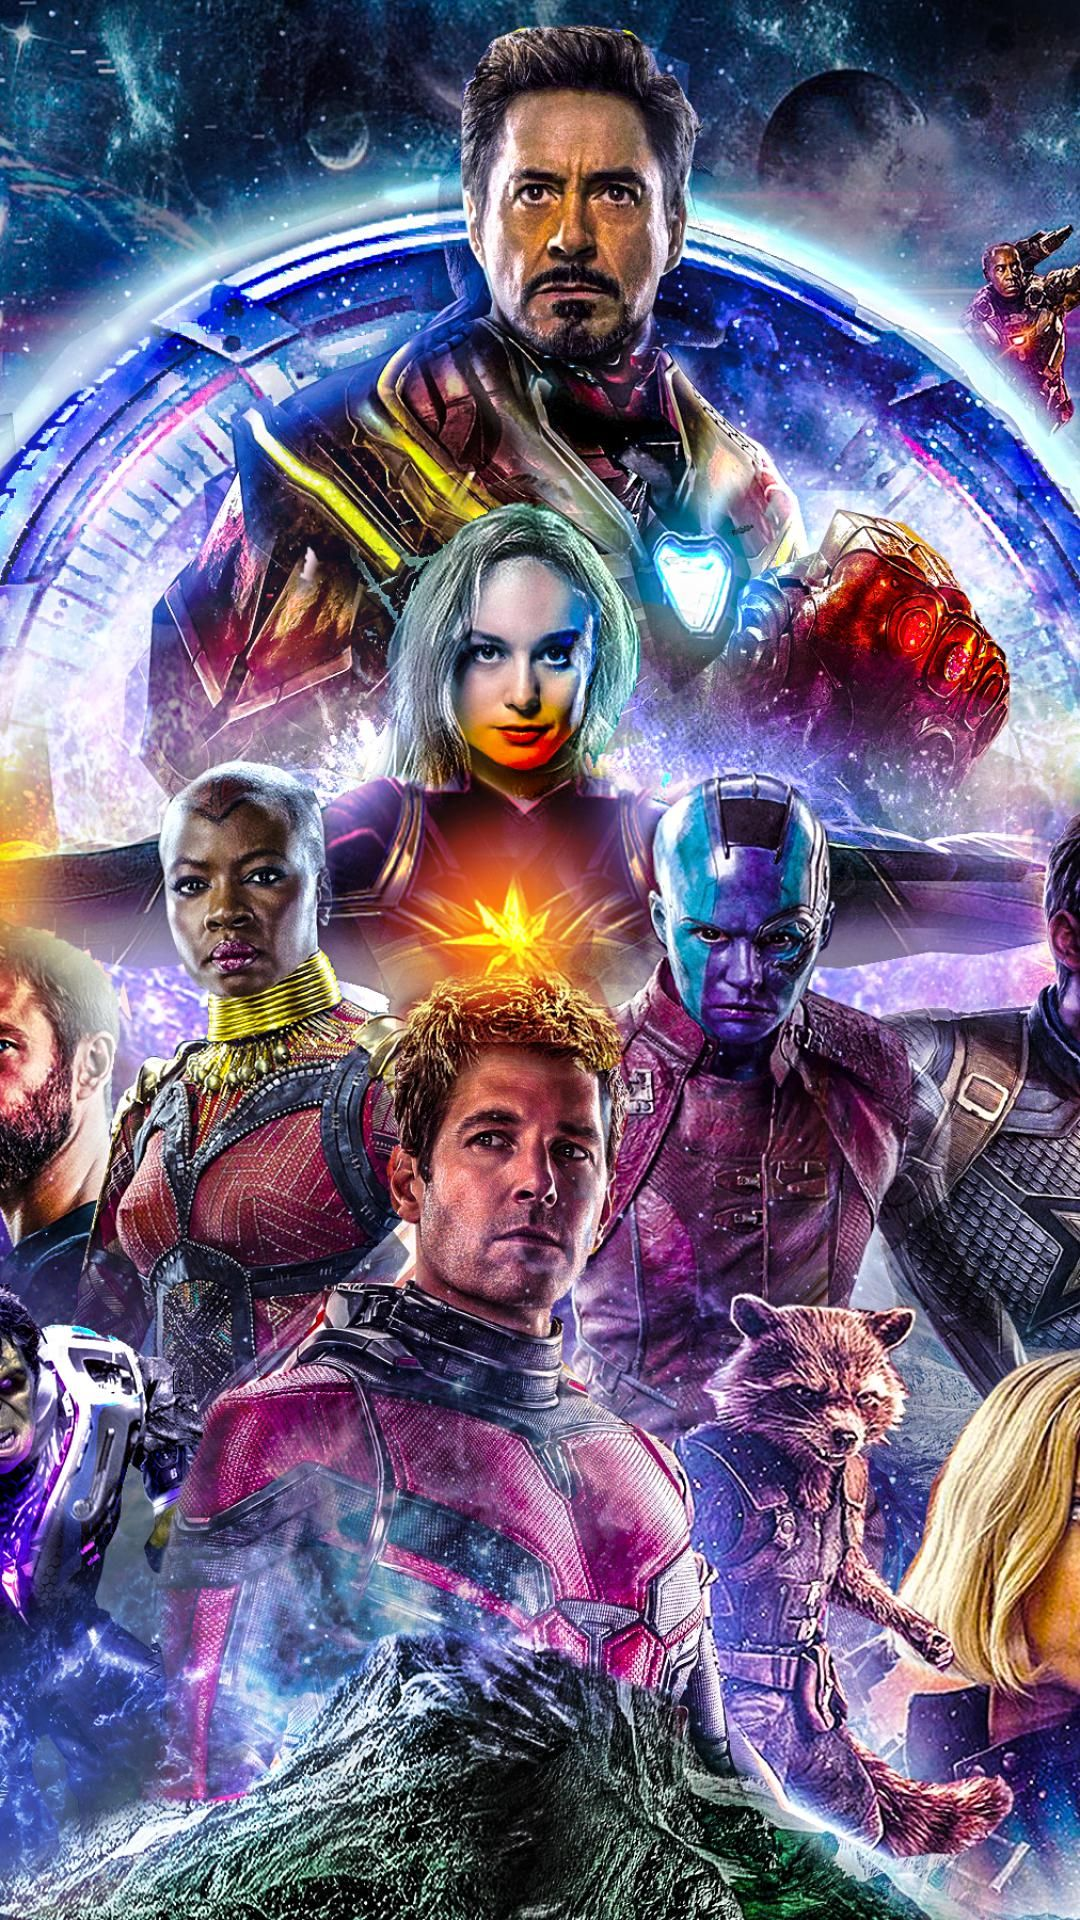 Avengers Endgame 2019 Wallpapers For Mobile Phones Avengers